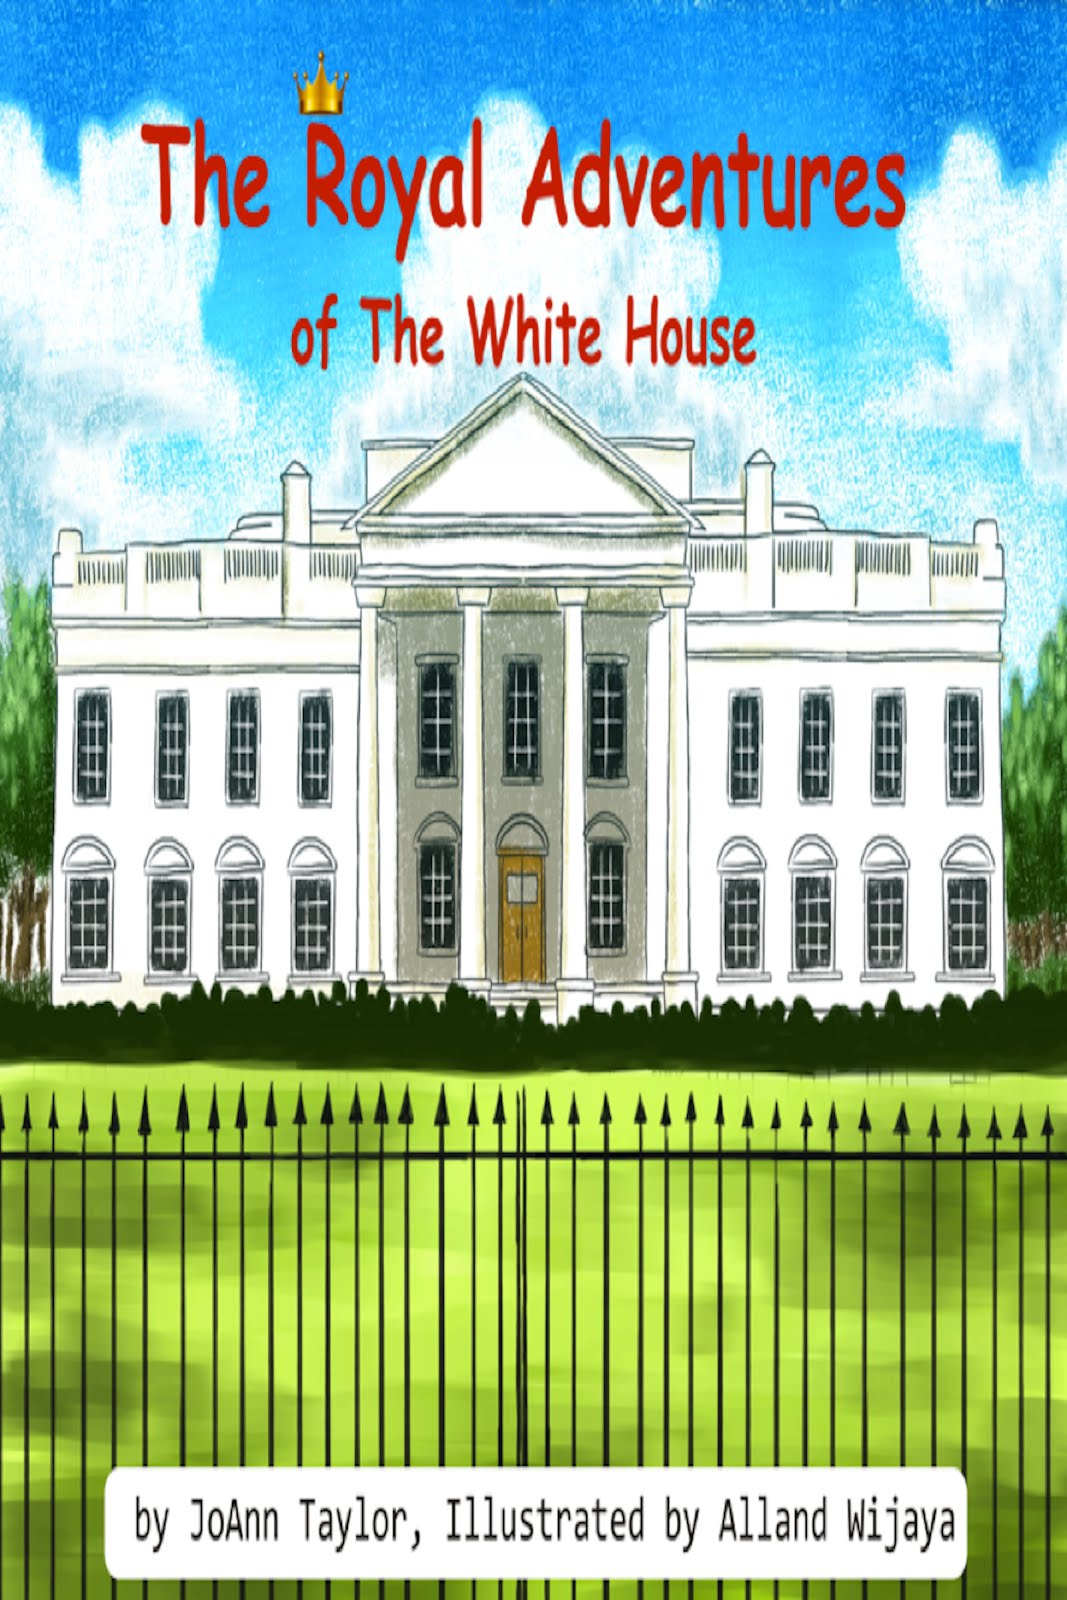 The Royal Adventures of The White House